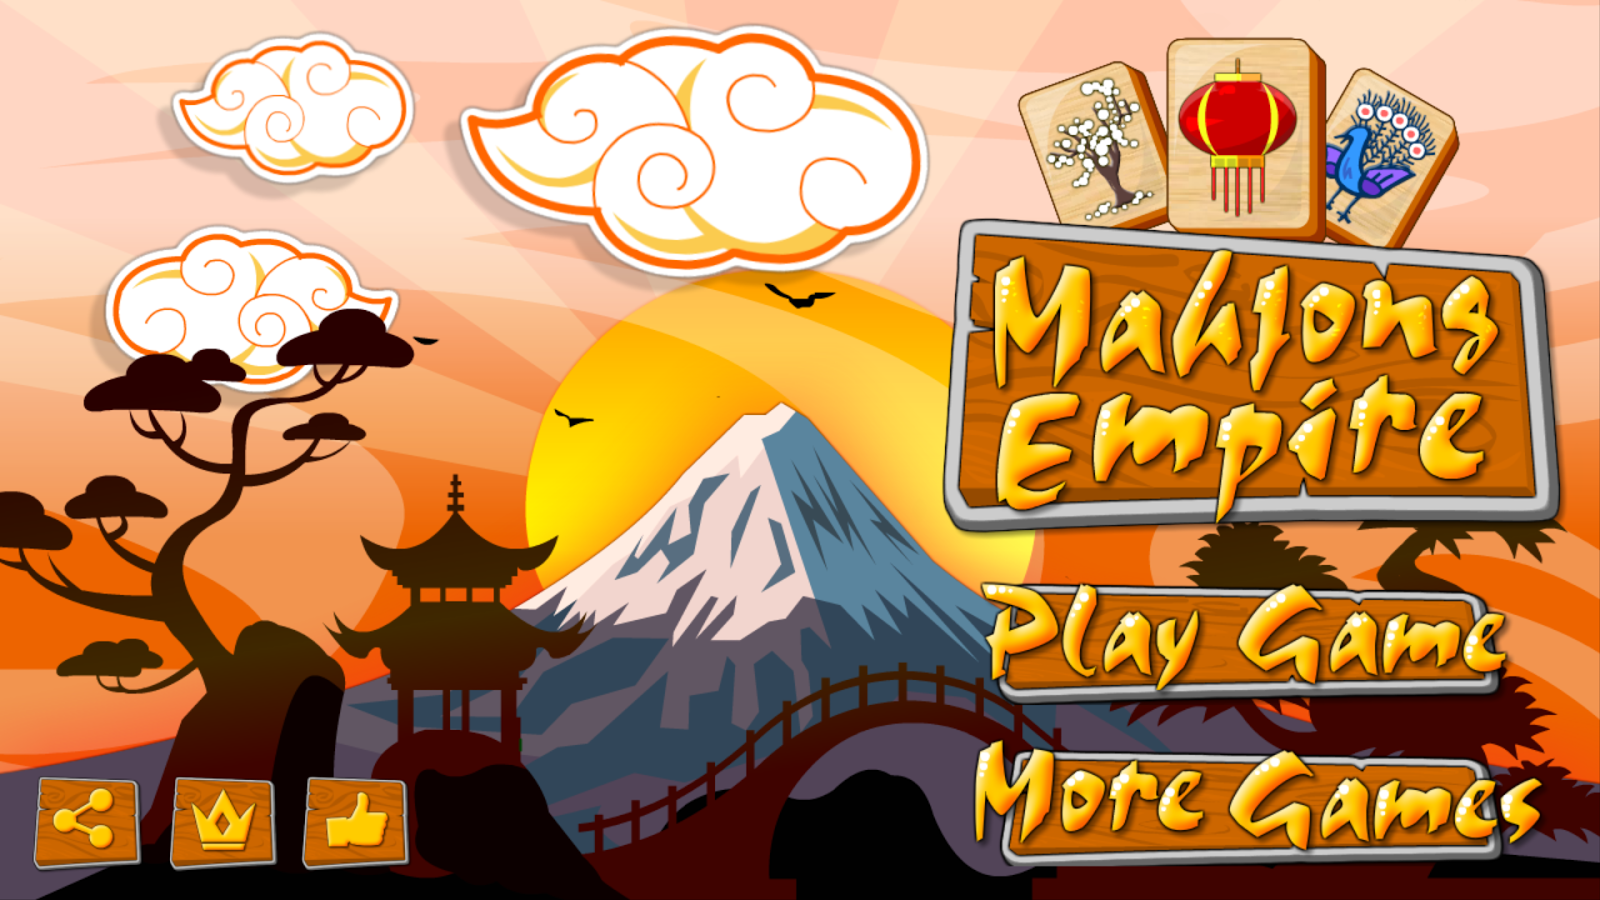 Mahjong Empire Mahjong Empire has classical rules. If you